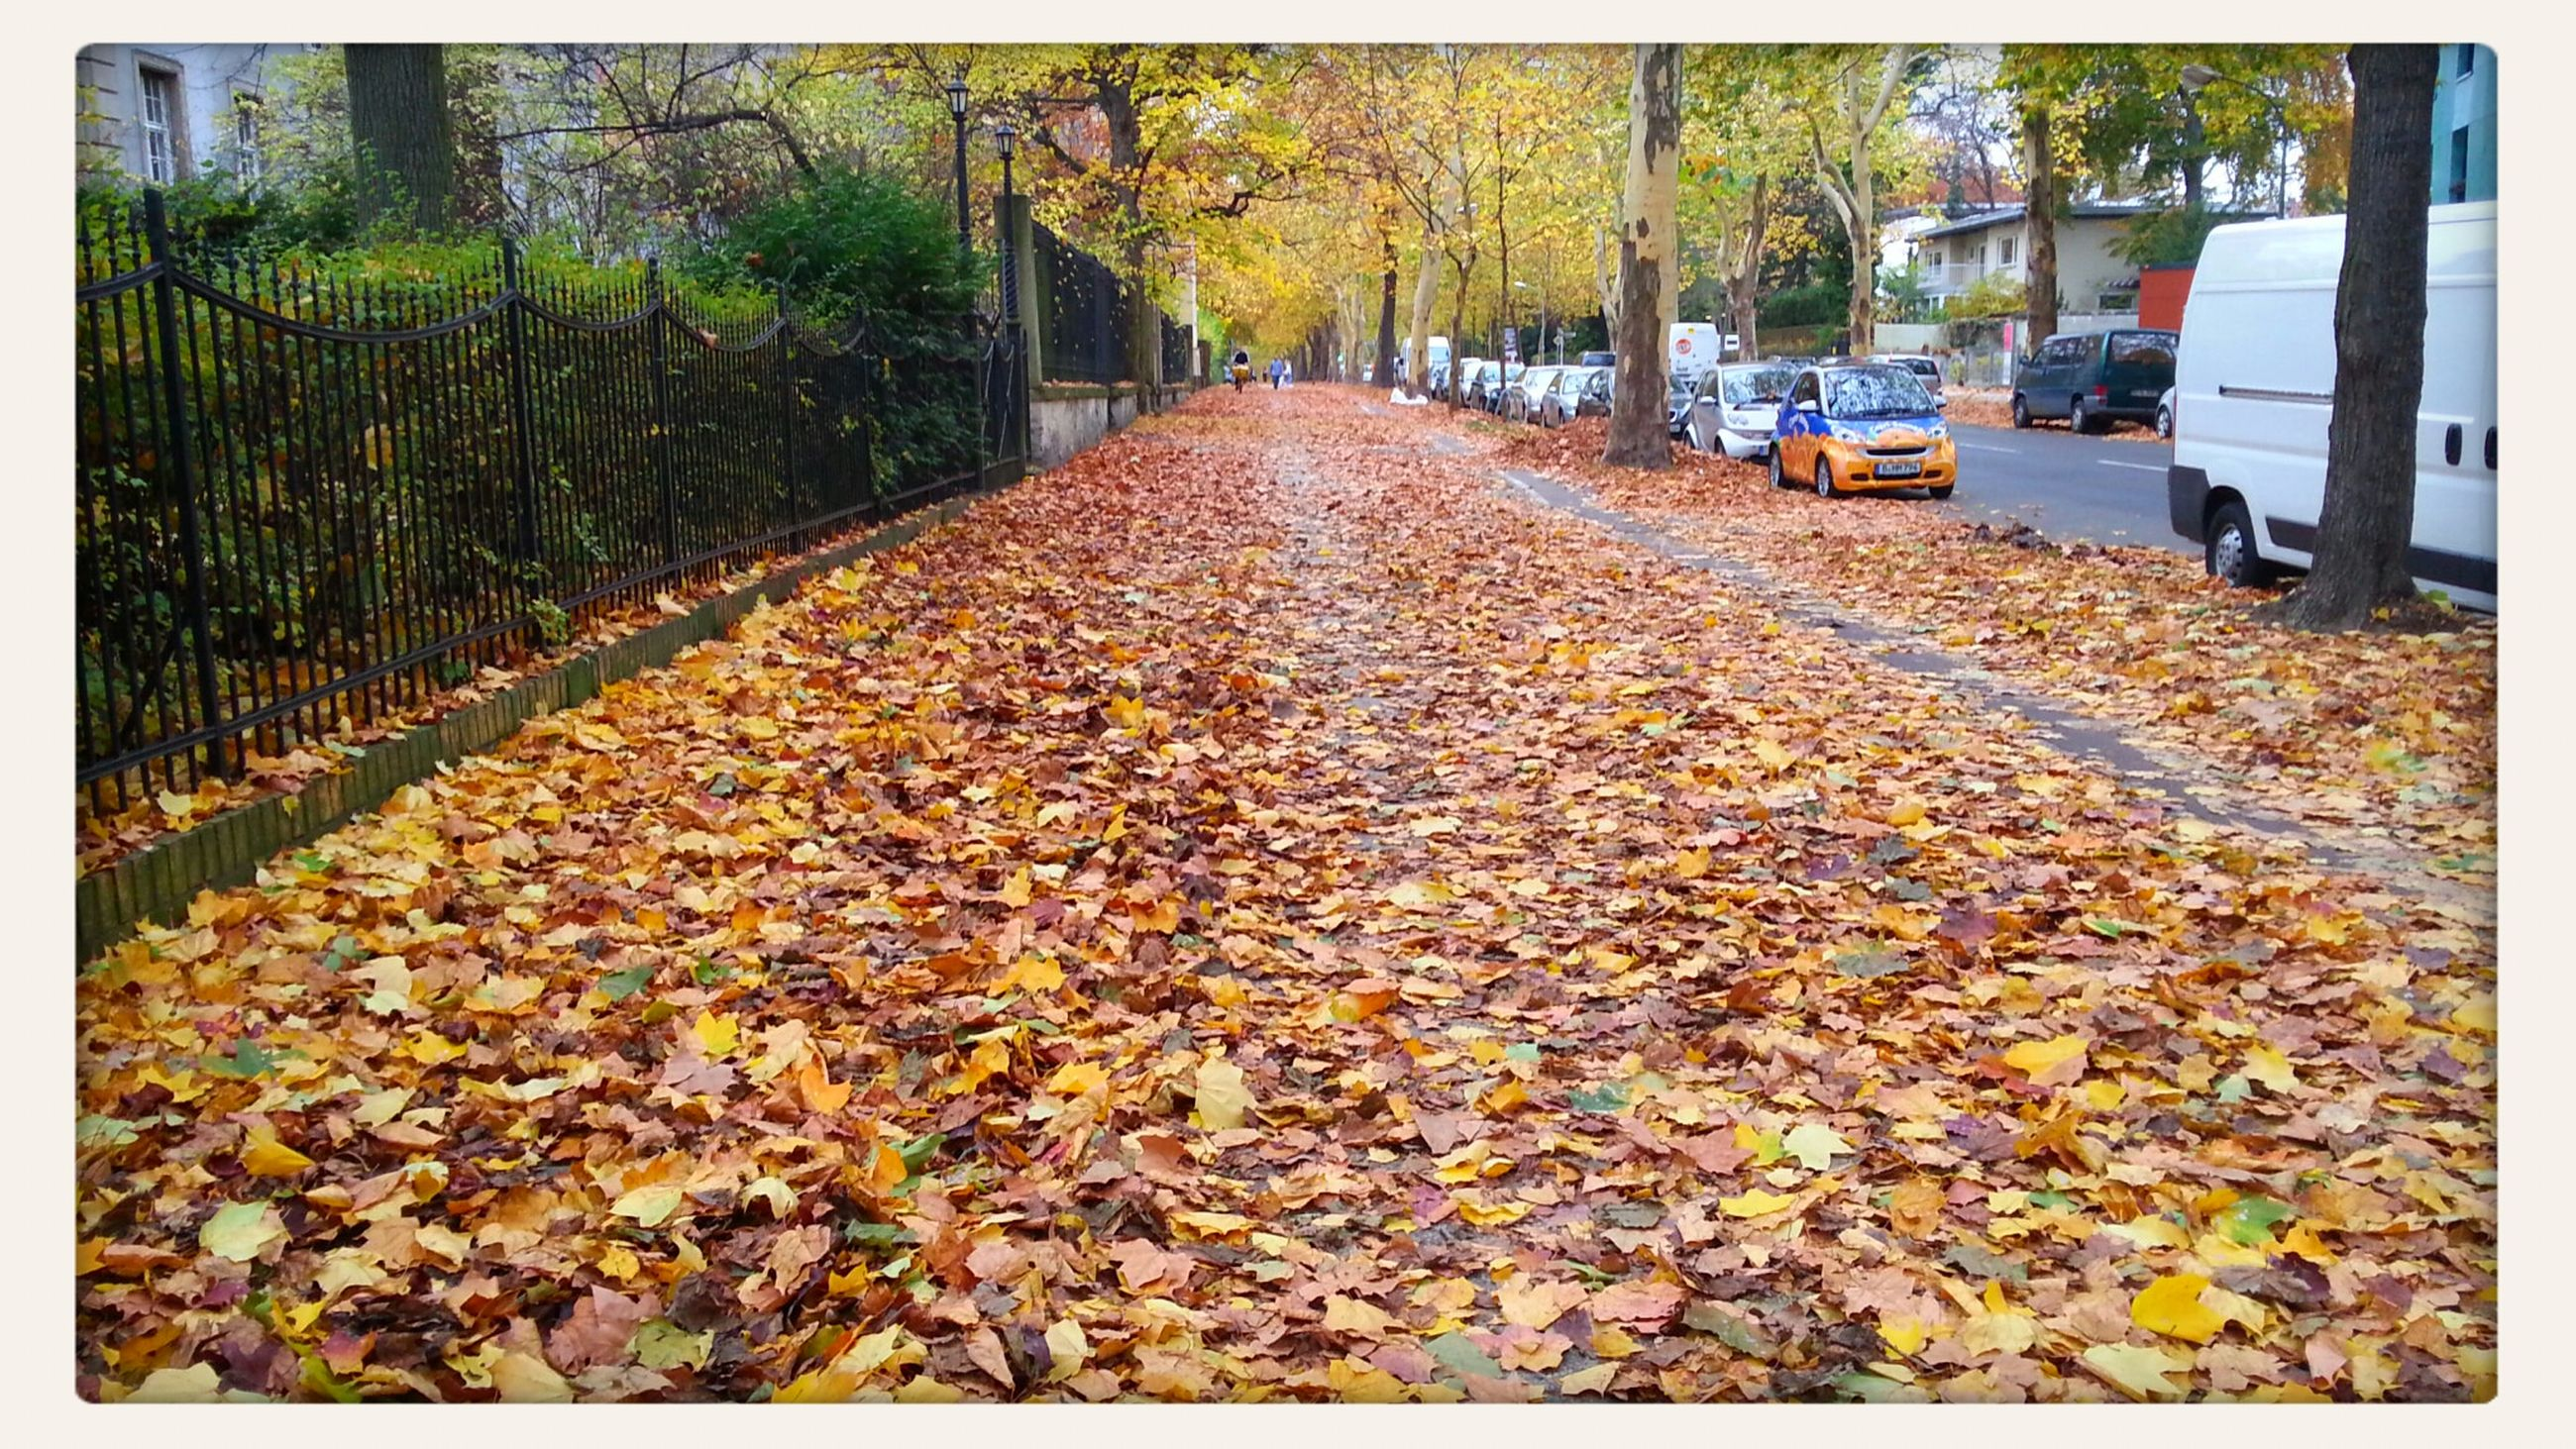 autumn, transportation, the way forward, tree, leaf, diminishing perspective, street, change, road, season, surface level, vanishing point, auto post production filter, dry, car, fallen, transfer print, outdoors, day, leaves